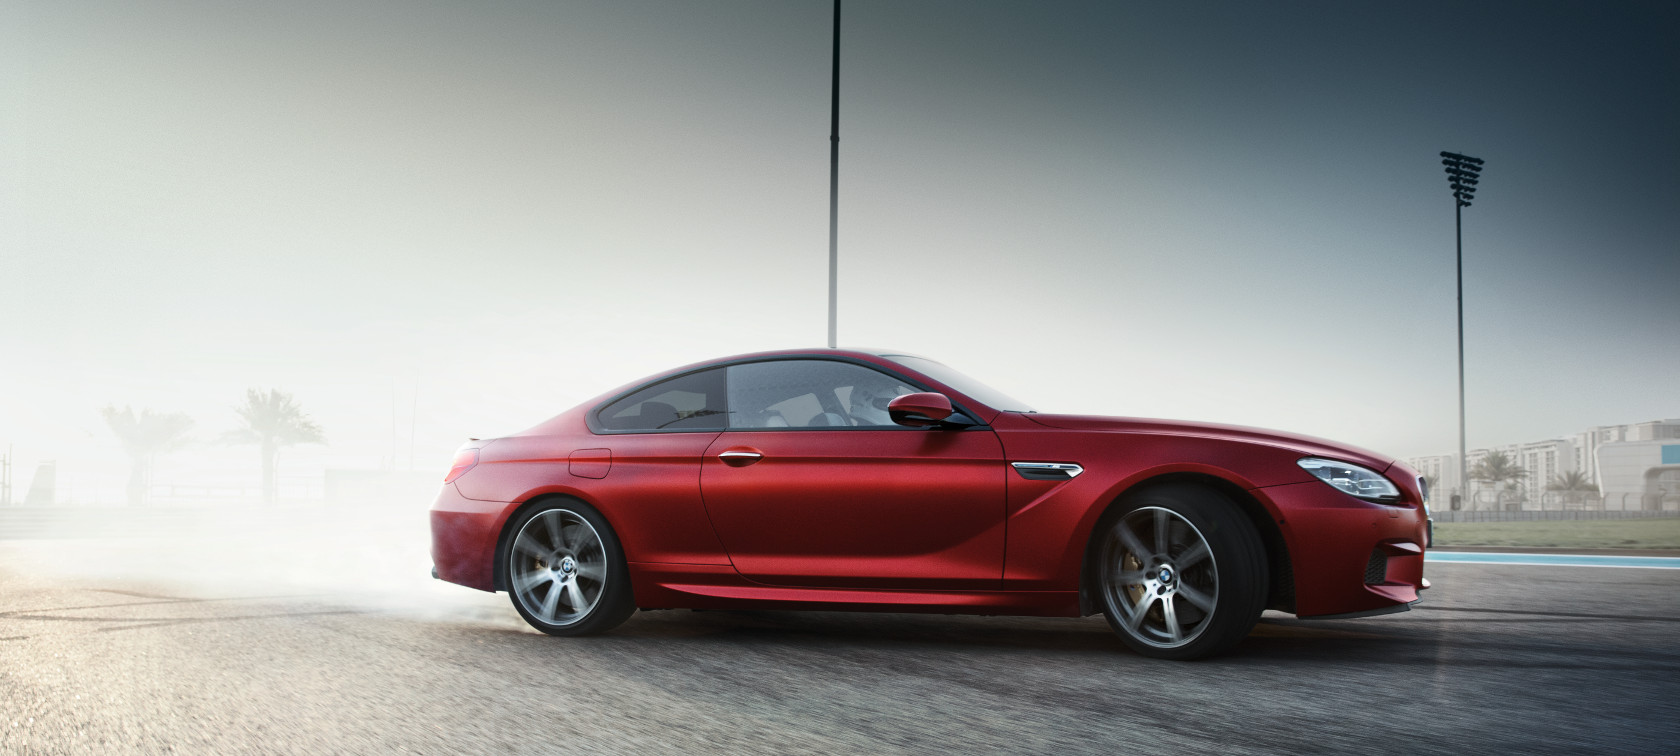 BMW M Series M6 Coupe in metallic red side view car drifting.